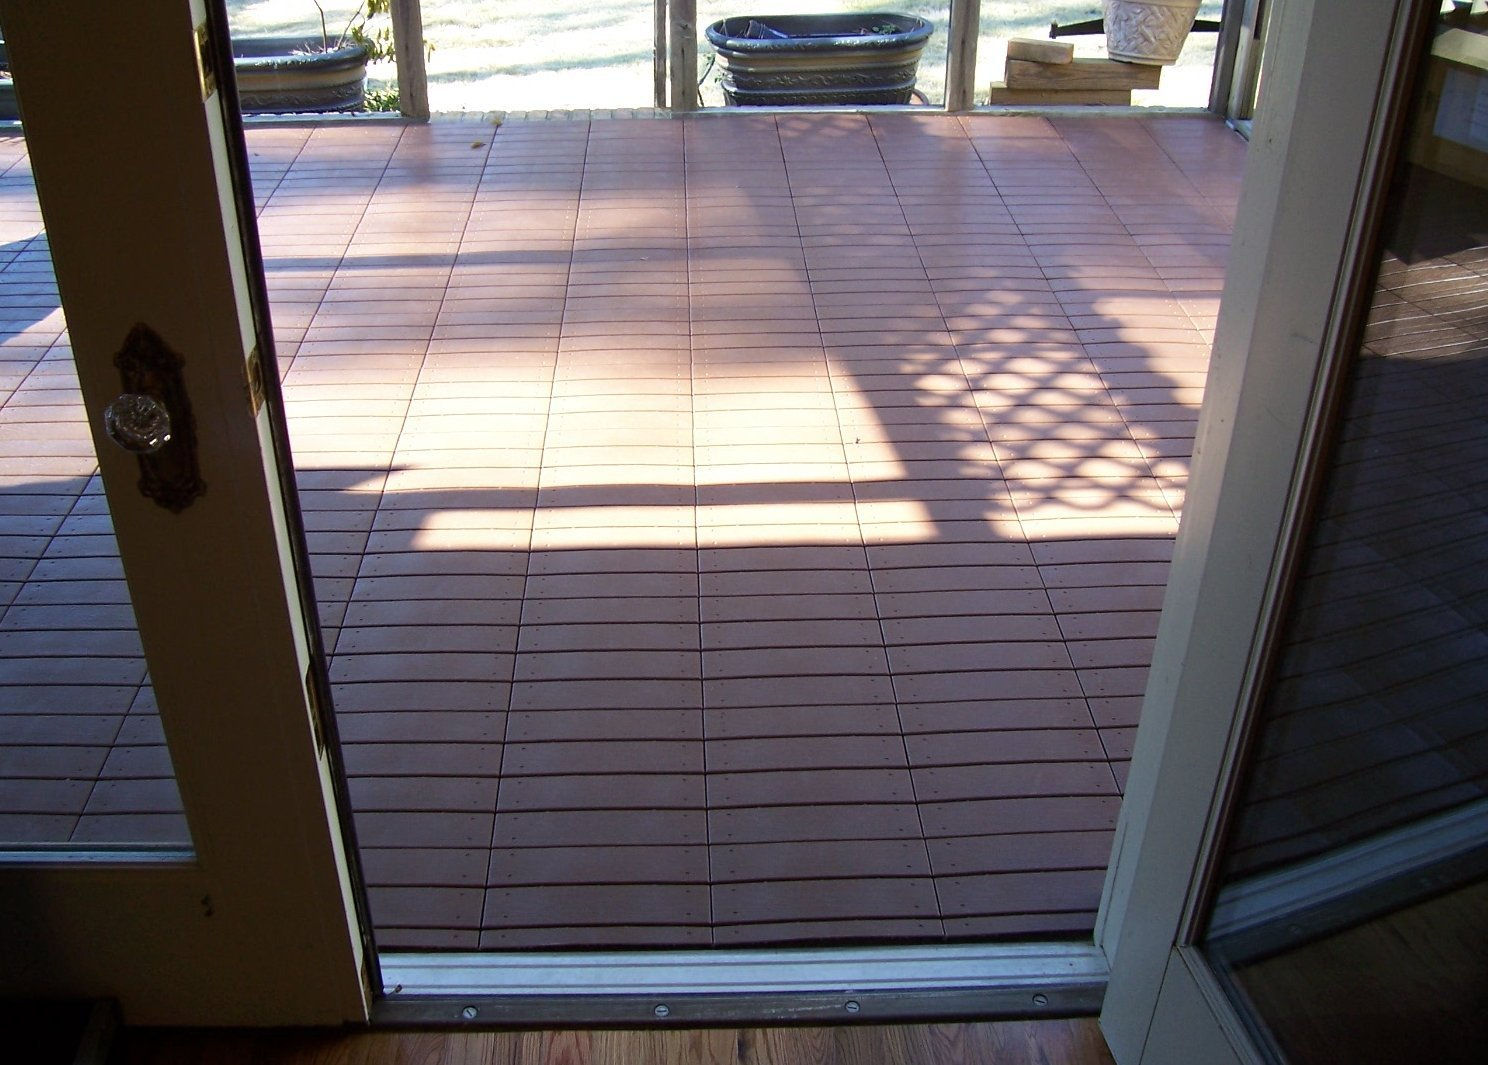 Amazon box of 48 tiles each easylink deck tile is 12 x 12 amazon box of 48 tiles each easylink deck tile is 12 x 12 3rd generation quick amp easy outdoor or indoor flooring for all hard home kitchen baanklon Image collections